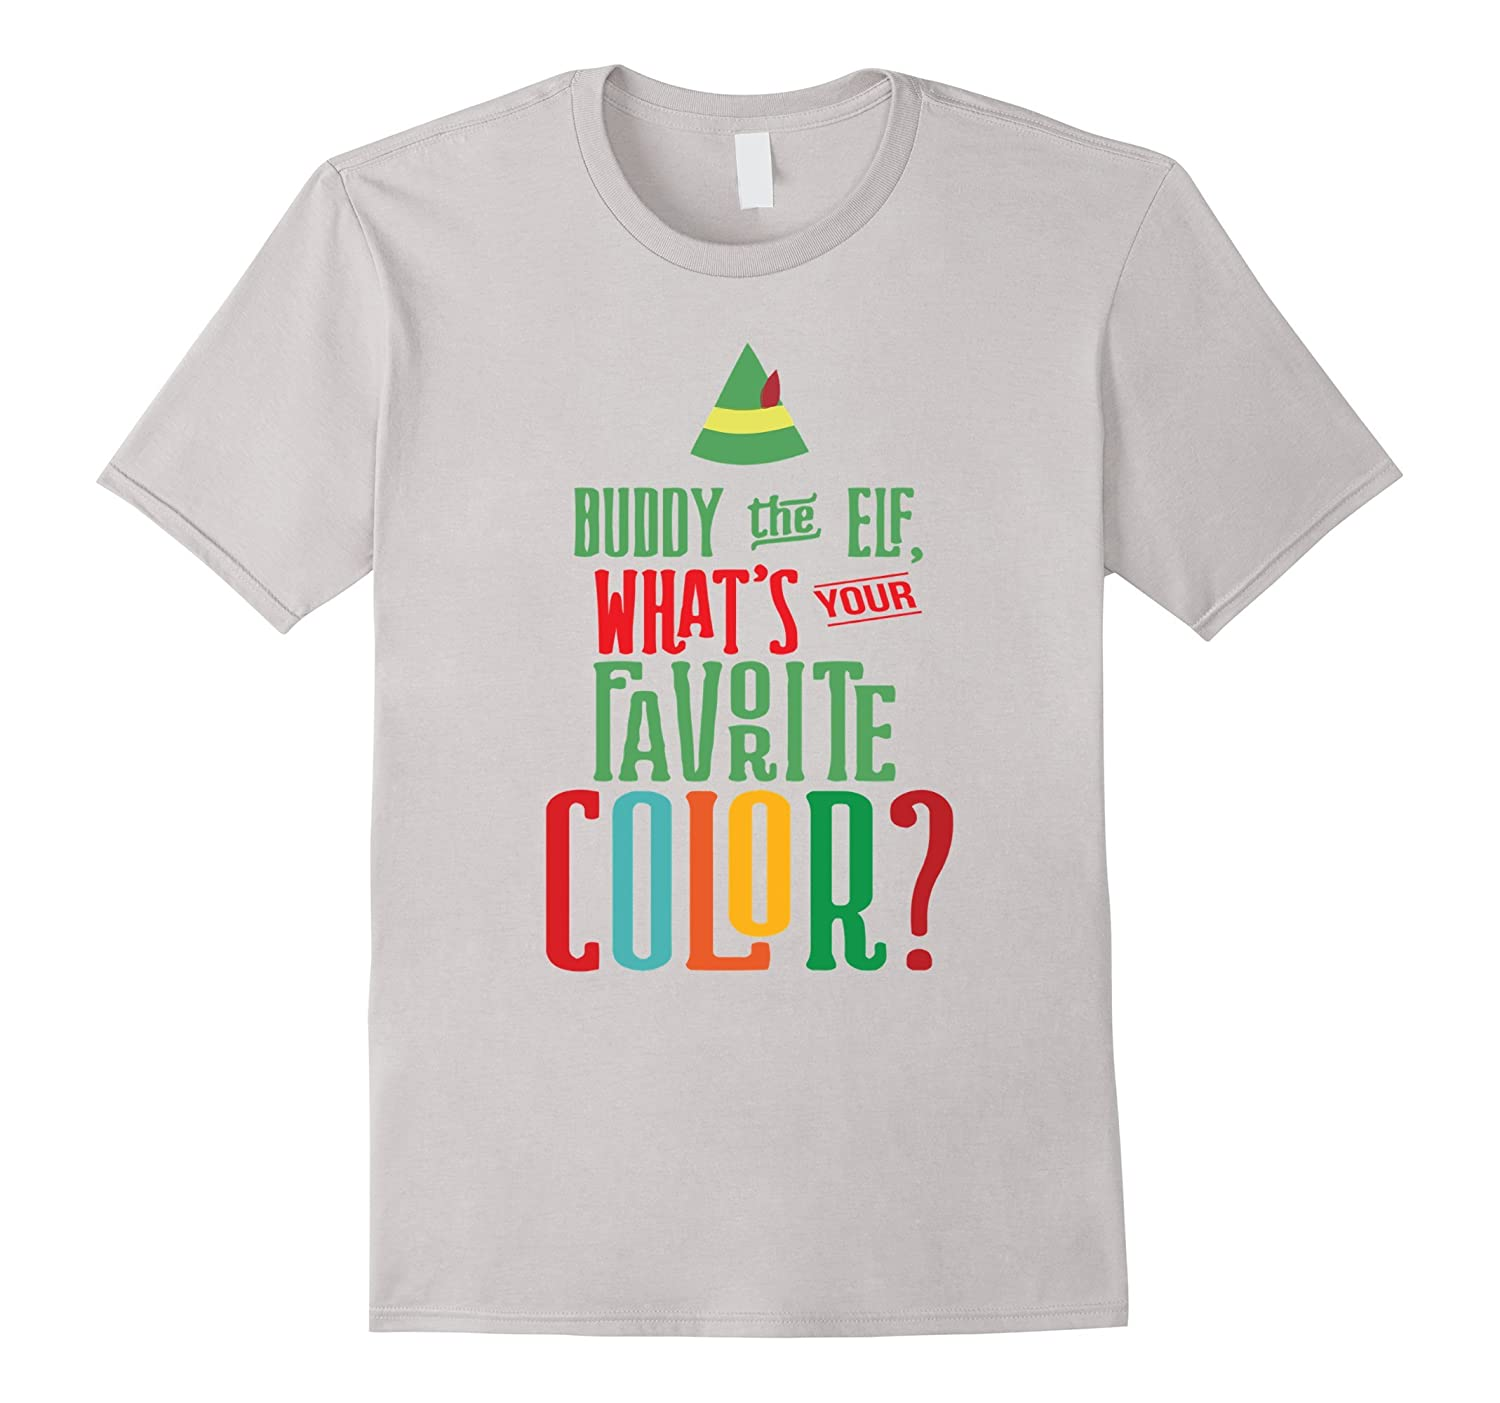 Buddy The Elf Whats Your Favorite Color? Christmas shirts-TD – Teedep